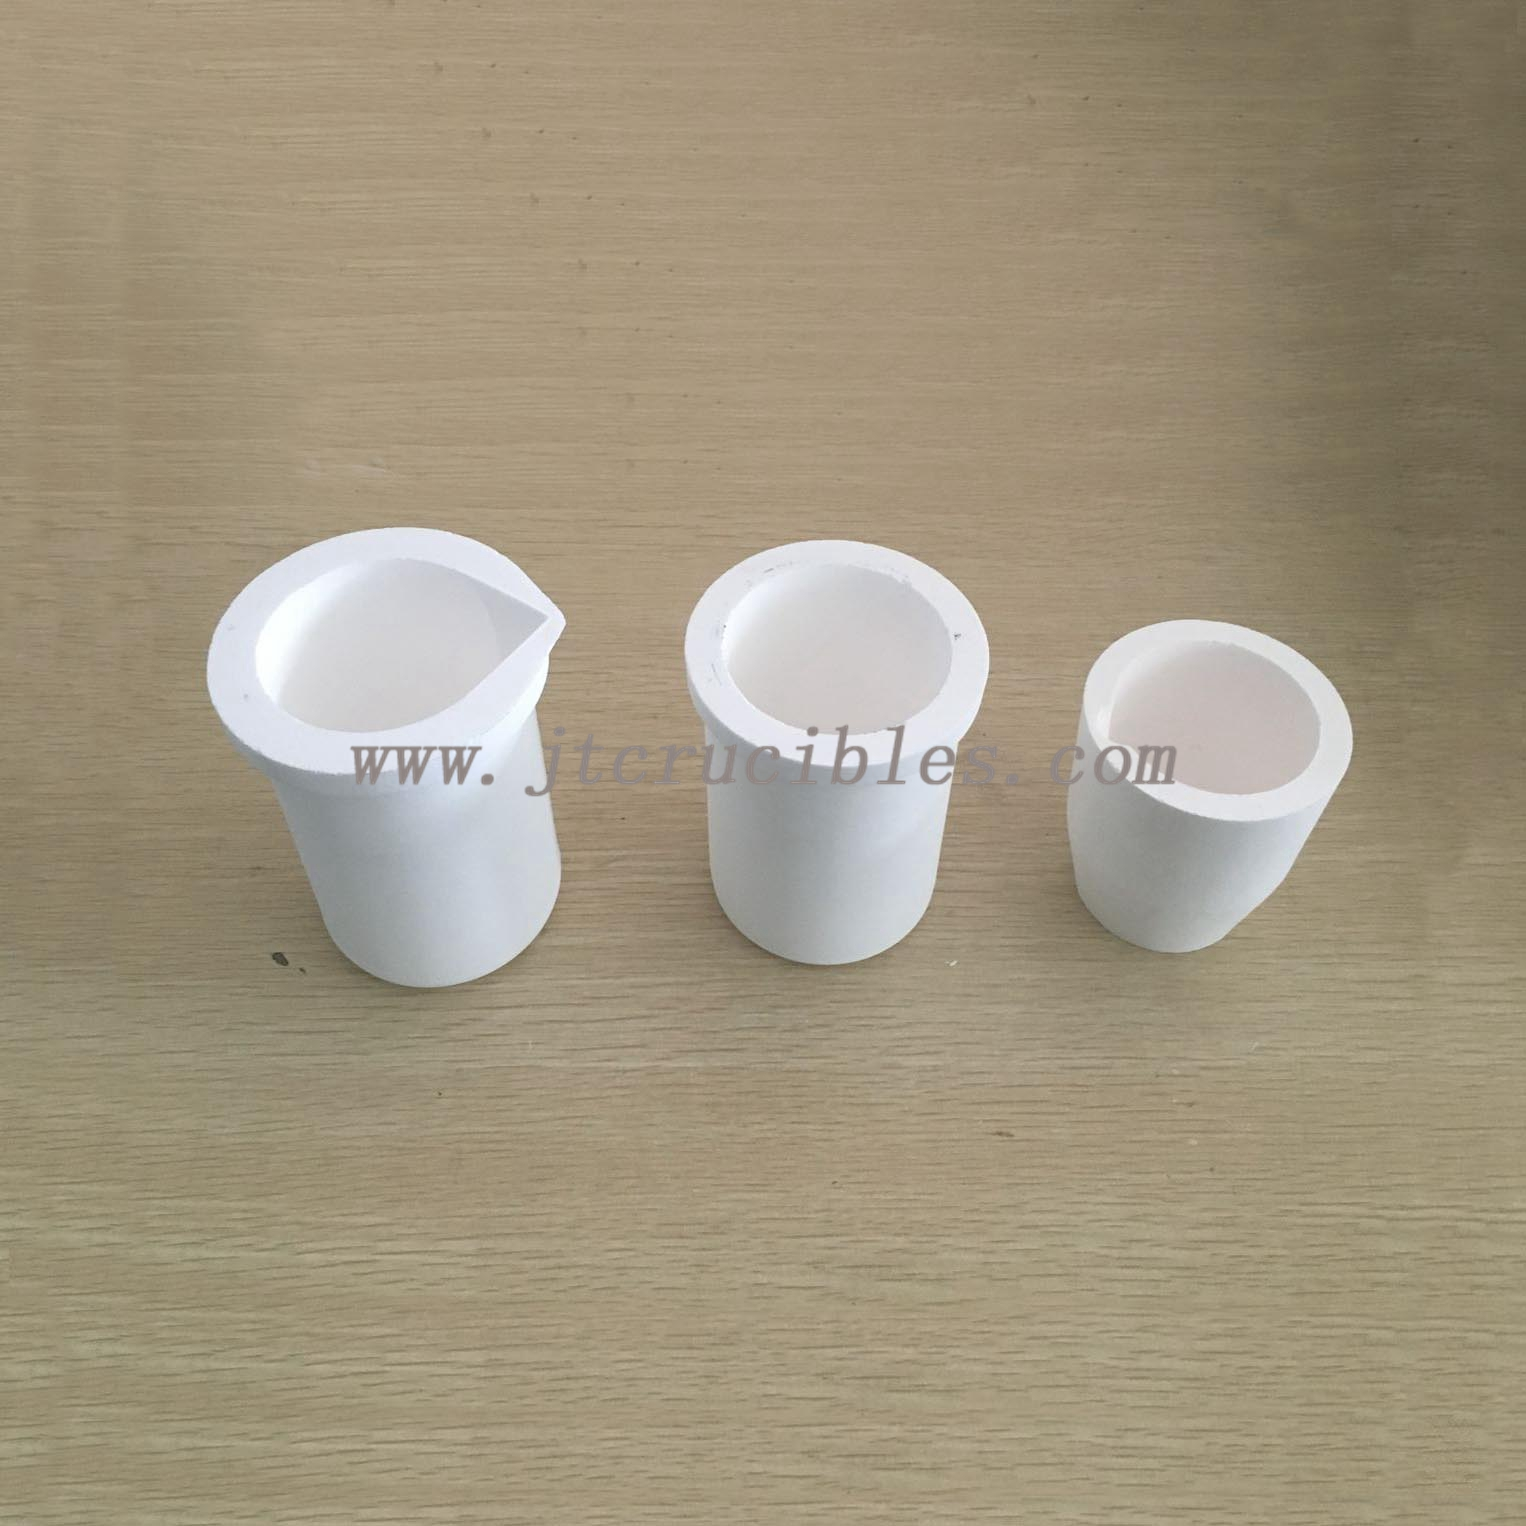 Fused silica crucibles for jewelry casting